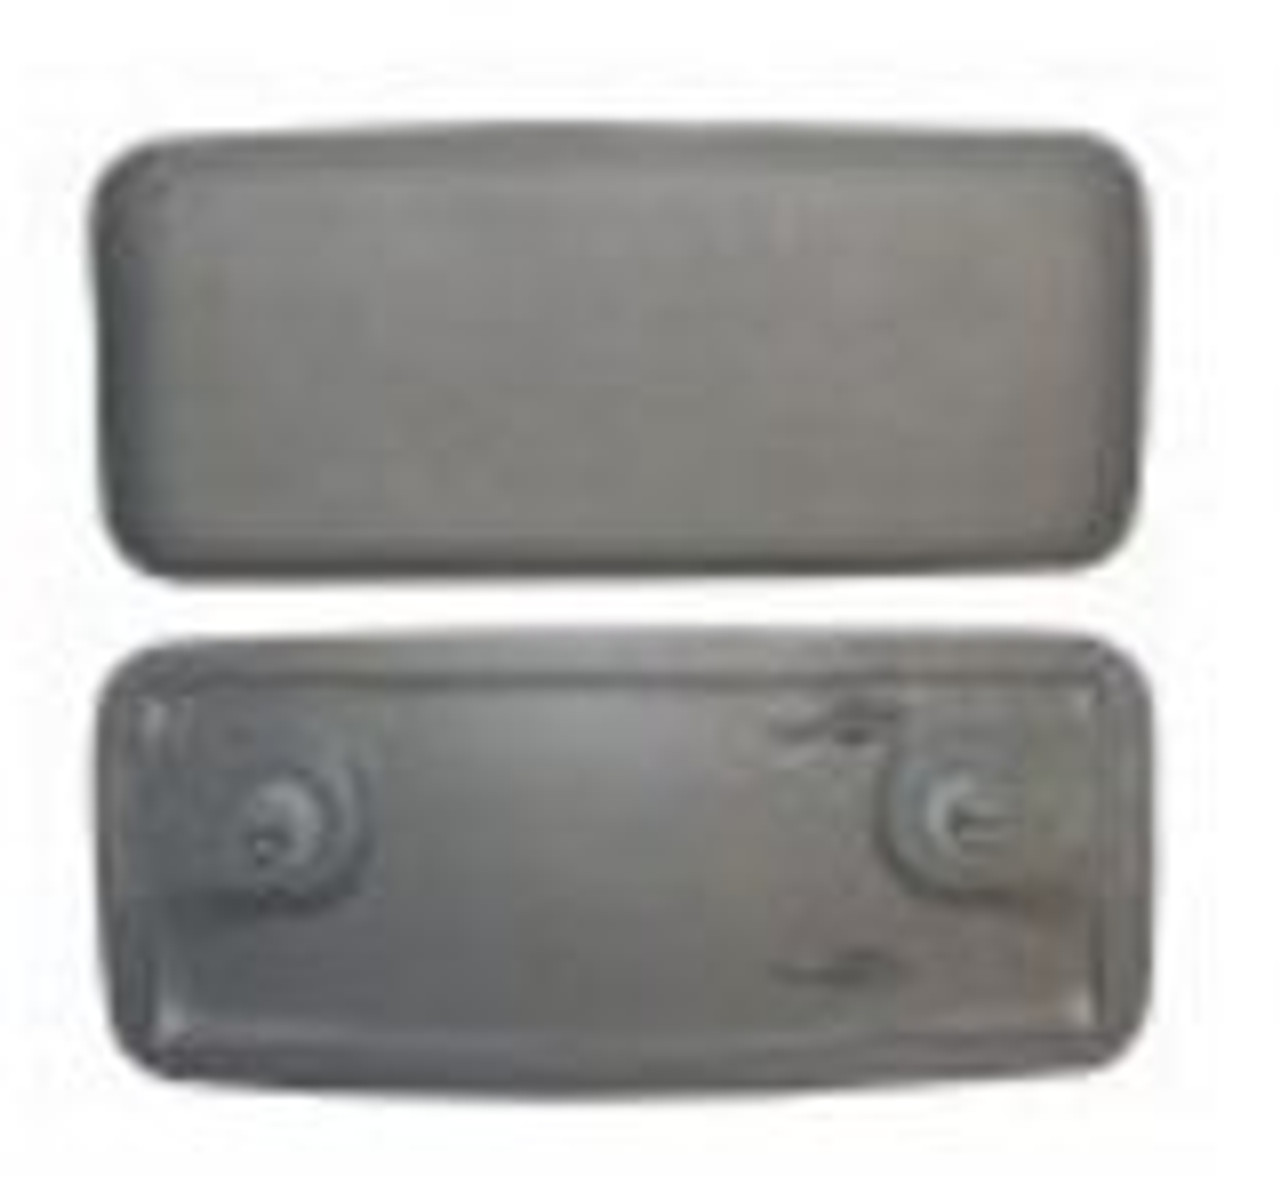 Pillow for Jacuzzi® Spas 2472-822 20152-001